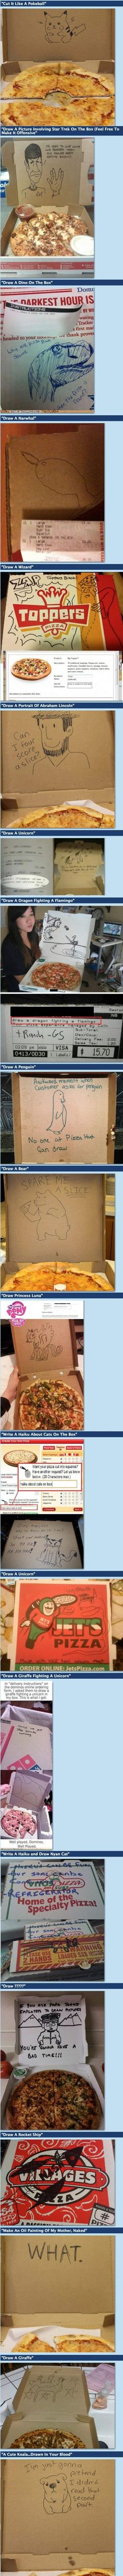 next time you order pizza, ask them to draw something on the box